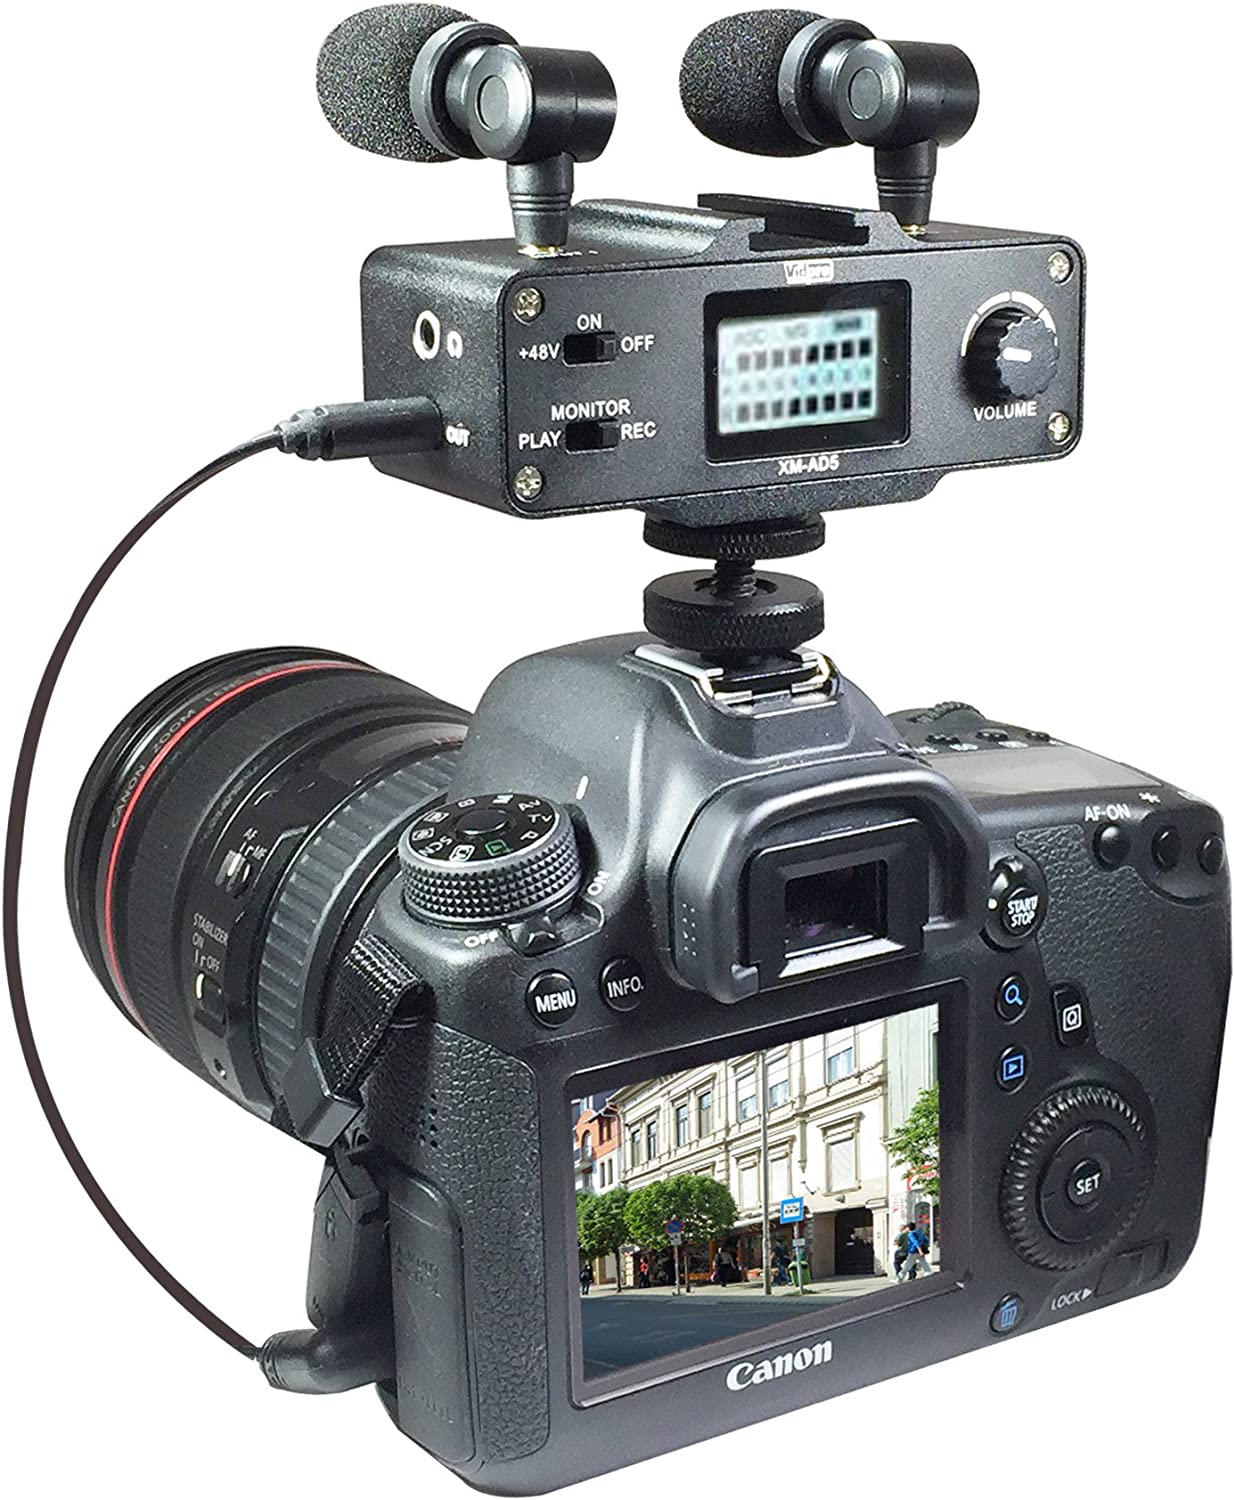 Panasonic NV-DS77 Camcorder External Microphone Vidpro XM-AD5 Mini Pre-Amp Smart Mixer with Dual Condenser Microphones for DSLR/'s Video Cameras and Phones with SDC-26 Case